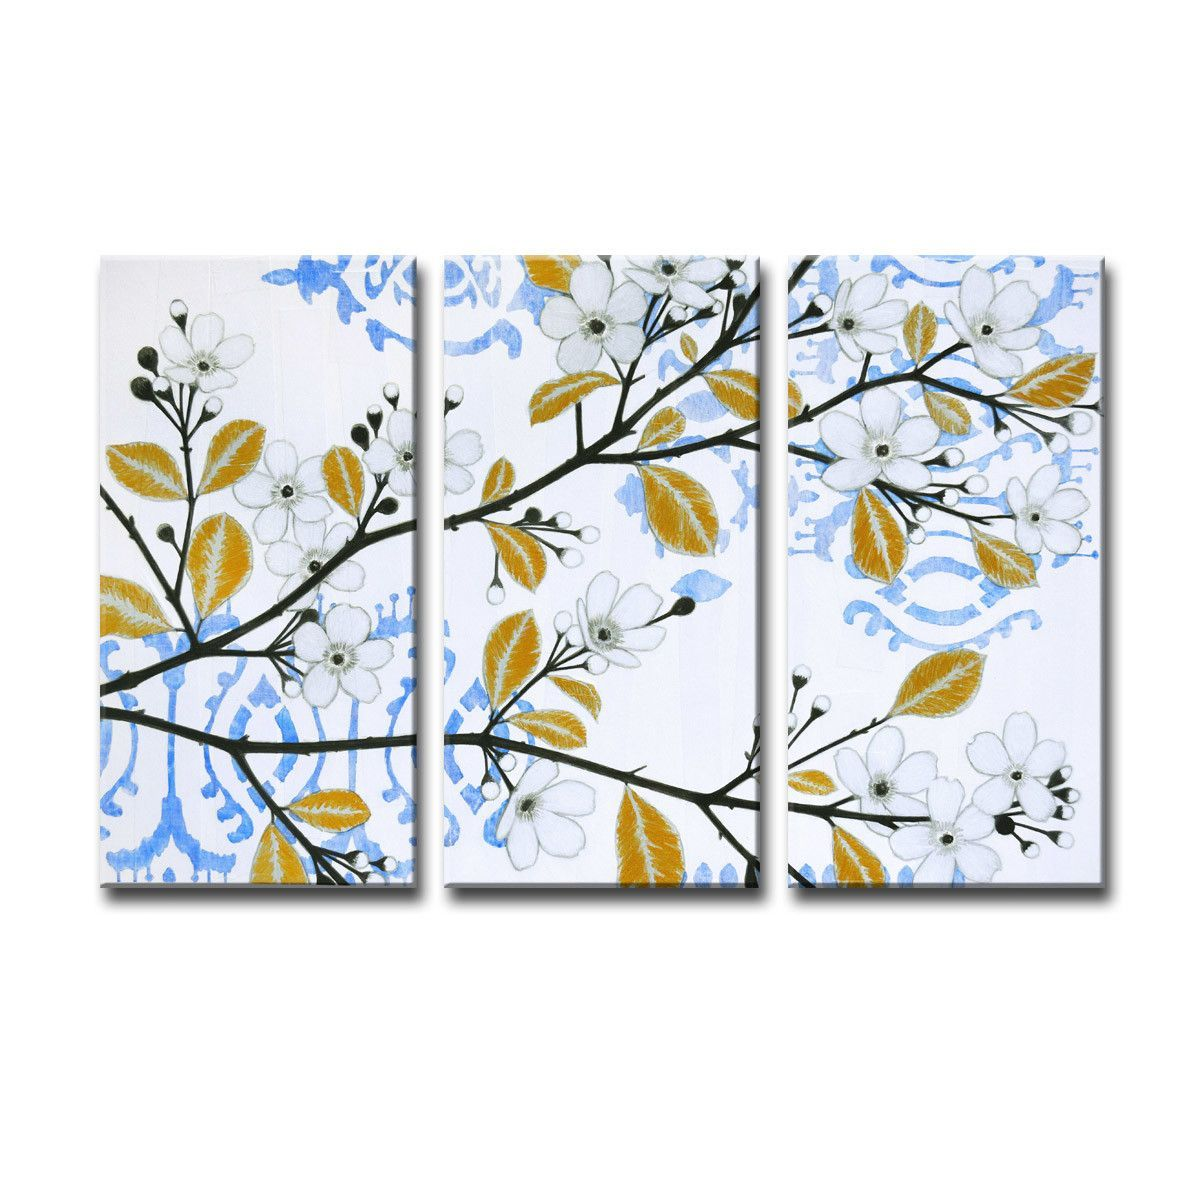 'Ikat Cherry Blossom' by Norman Wyatt Jr. 3 Piece Graphic Art on Canvas Set